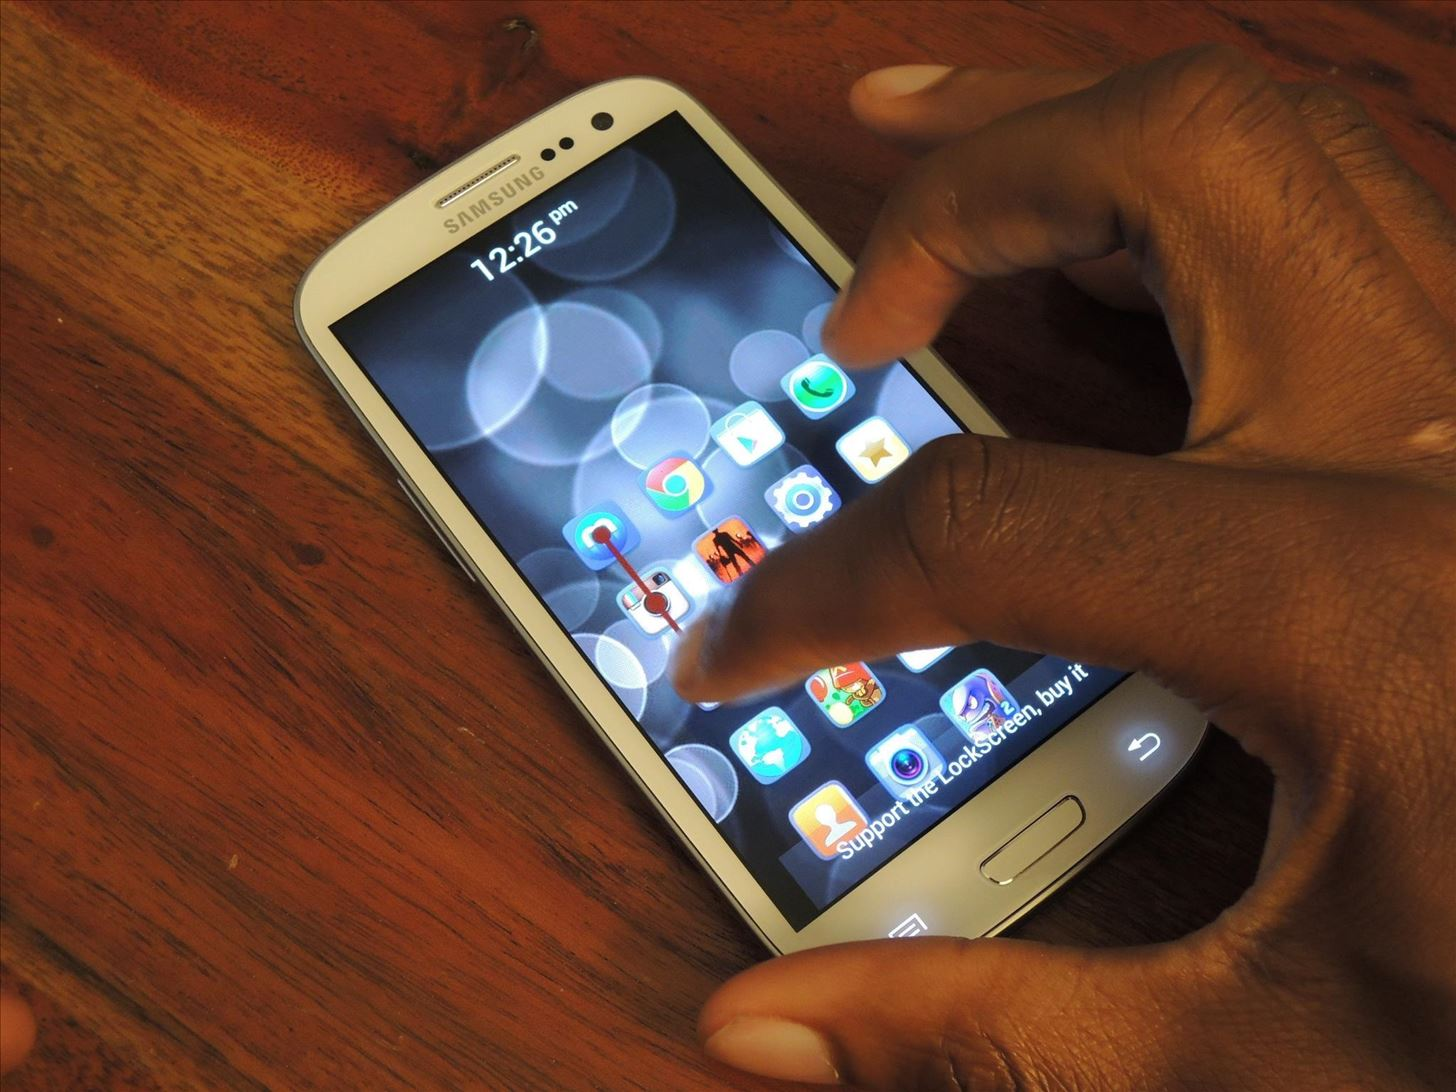 How to Securely Quick Launch Any App You Want from Your Samsung Galaxy S3's Lock Screen